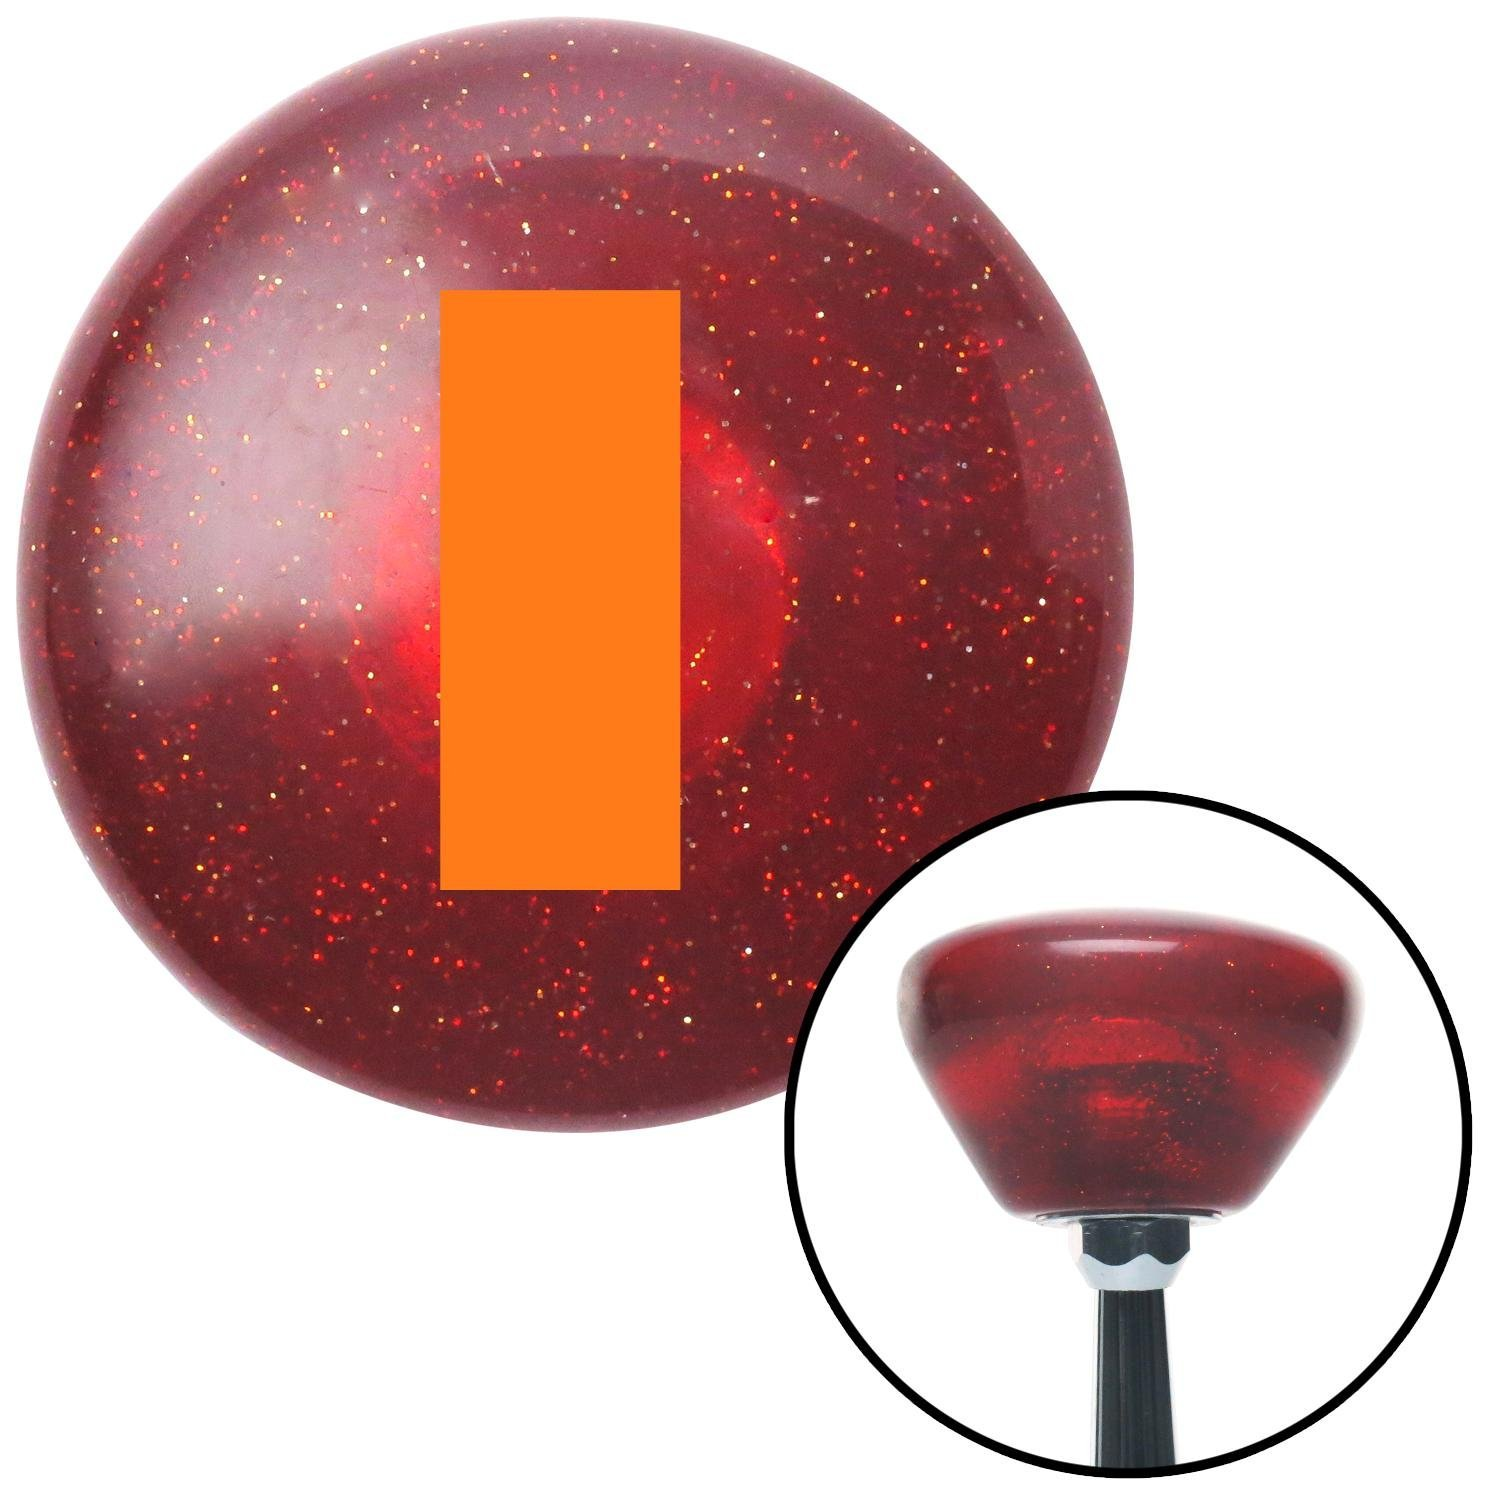 American Shifter 195196 Red Retro Metal Flake Shift Knob with M16 x 1.5 Insert Orange Officer 01-2n Lt. and 1d Lt.